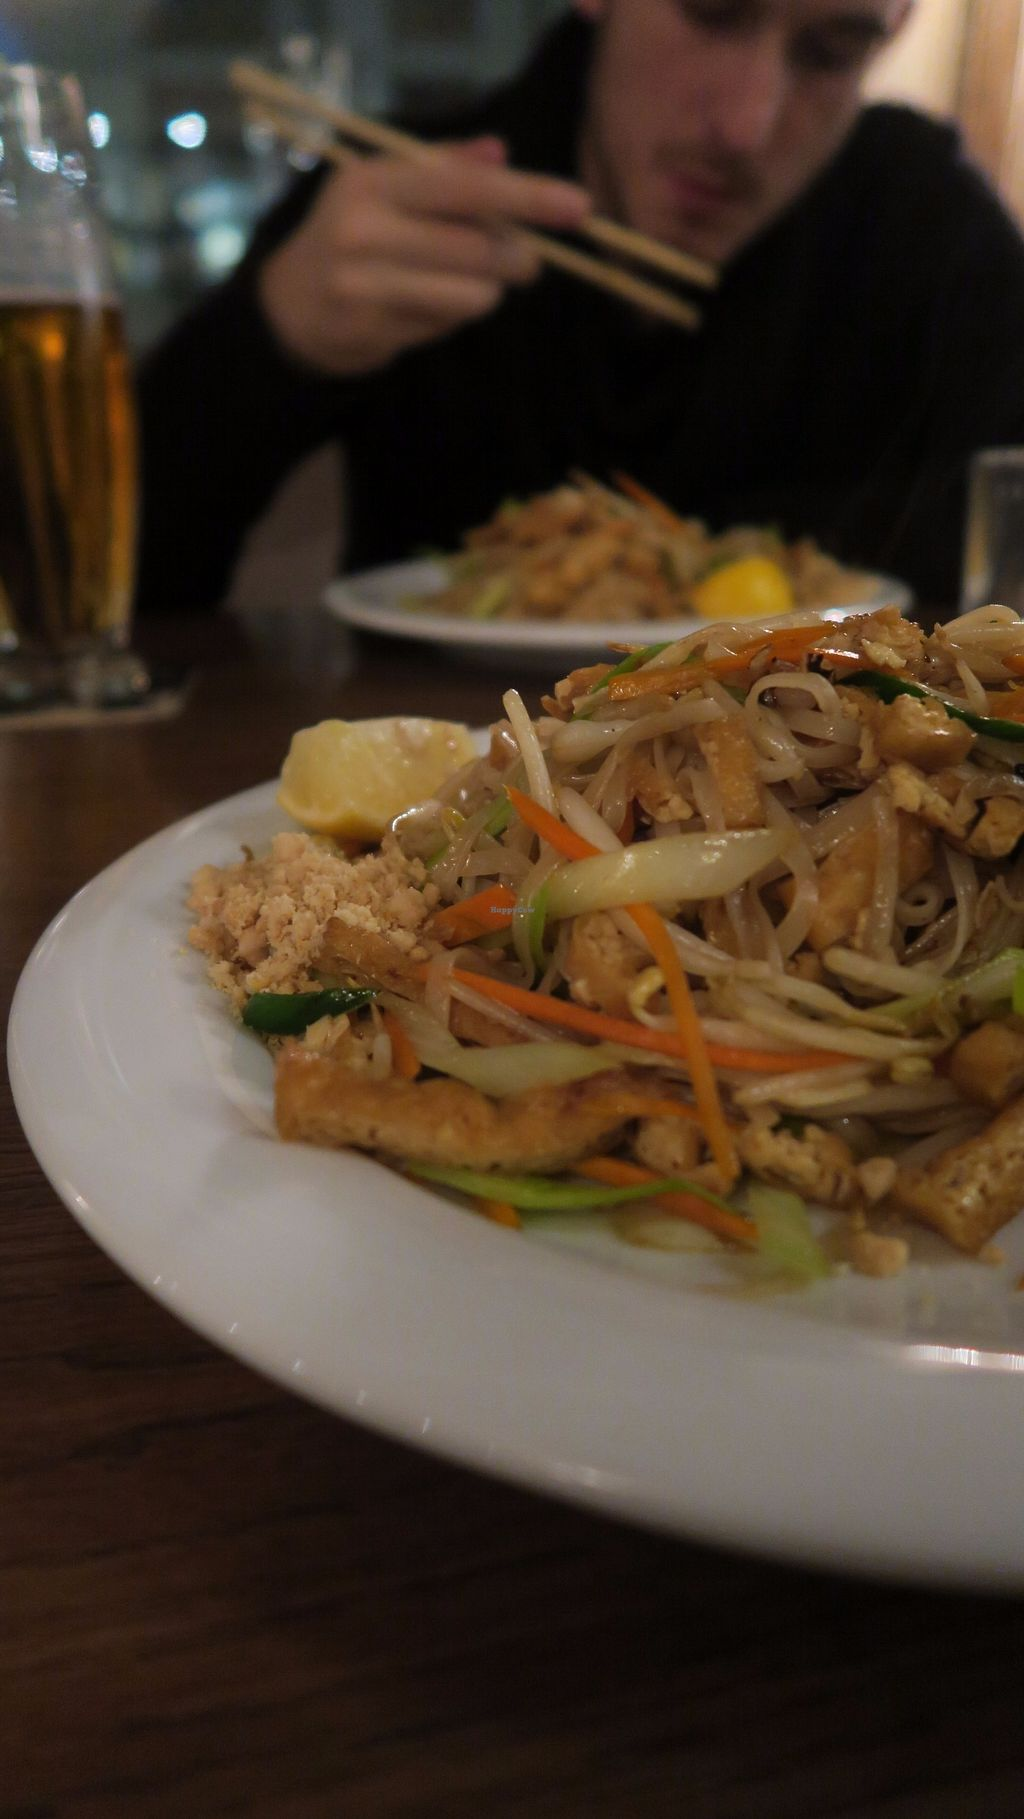 """Photo of Modry Zub  by <a href=""""/members/profile/Nikolate"""">Nikolate</a> <br/>Pad thai <br/> November 7, 2017  - <a href='/contact/abuse/image/80336/323020'>Report</a>"""